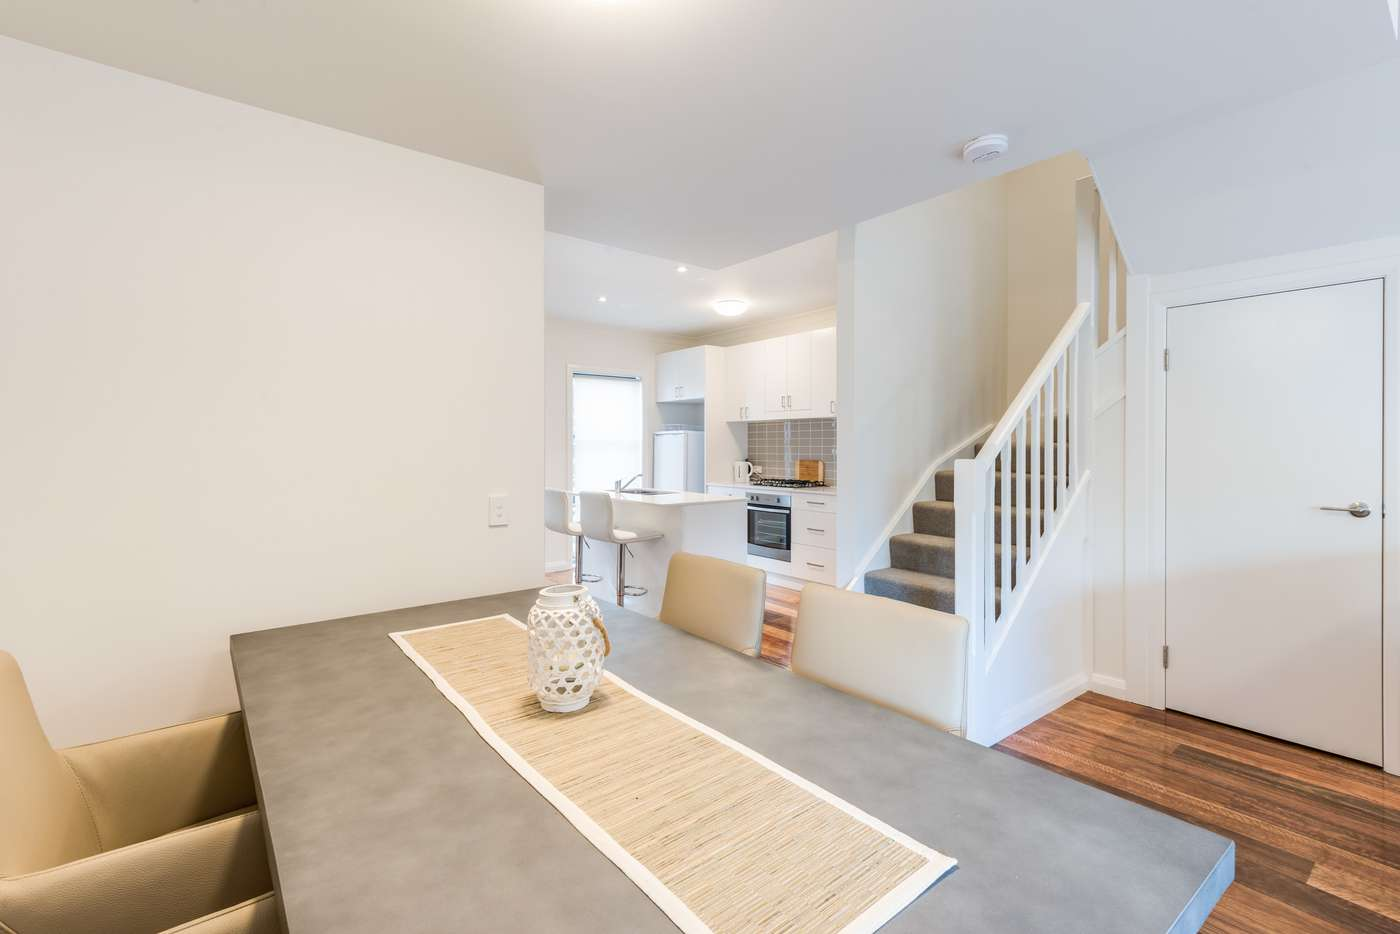 Fifth view of Homely townhouse listing, 13/6A Carrak Road, Kincumber NSW 2251